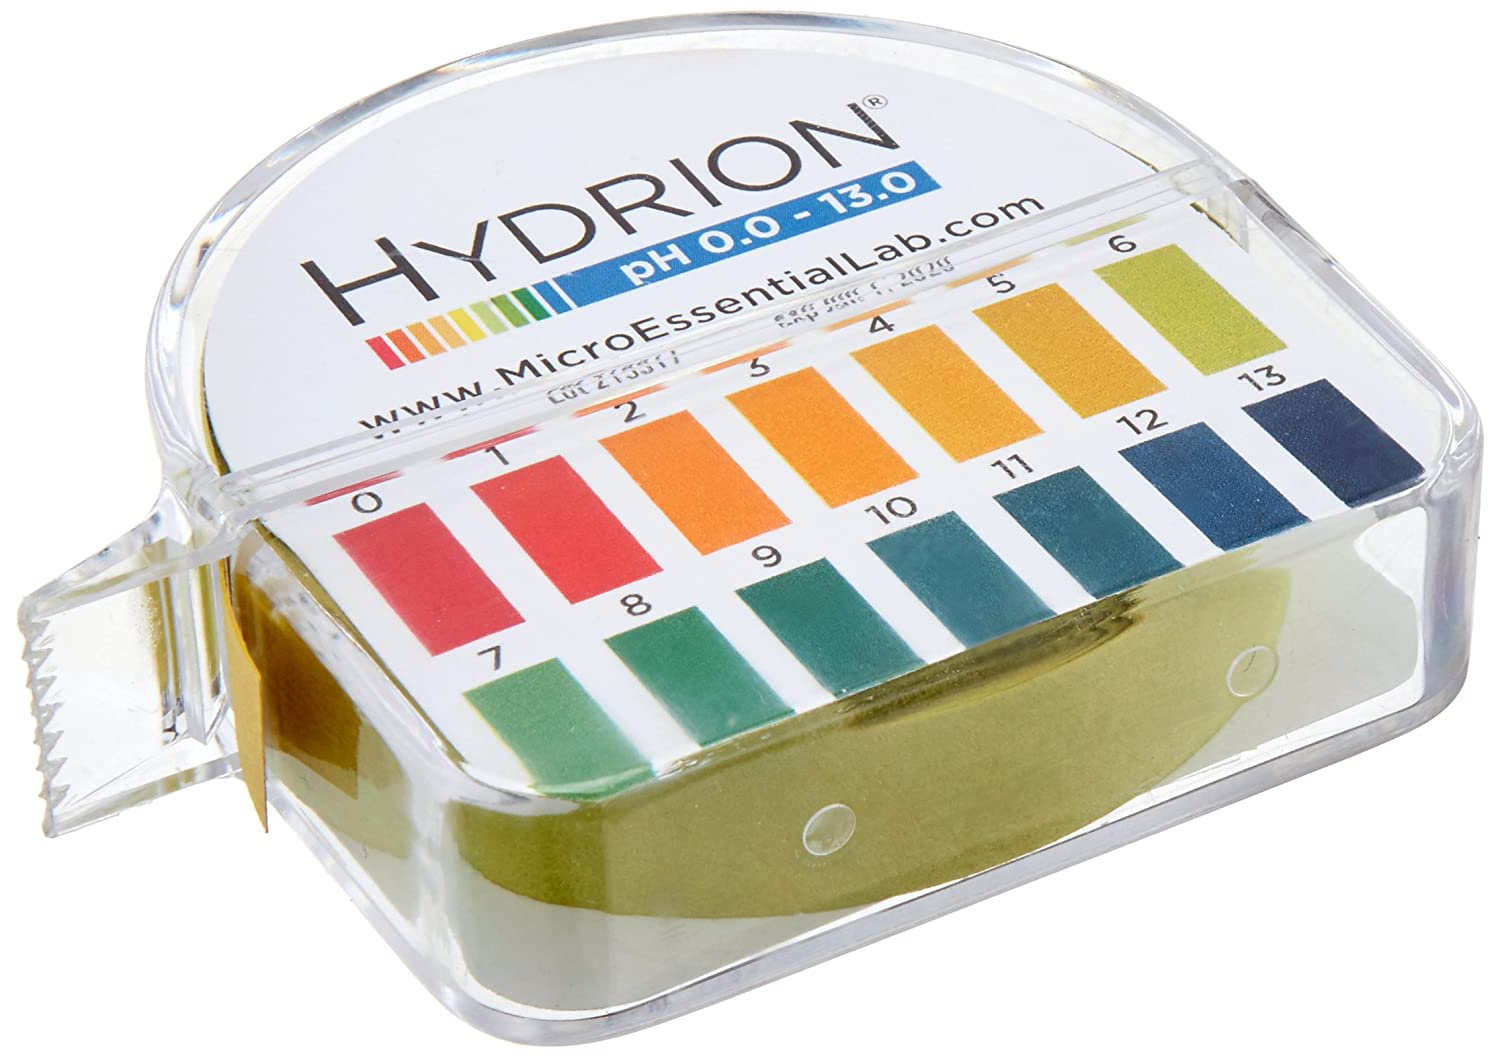 pHydrion 0 to 13 pH Jumbo pH Papers, Range 0 to 13, 50 Ft/Roll MICRO ESSENTIAL LABORATORY 5920024